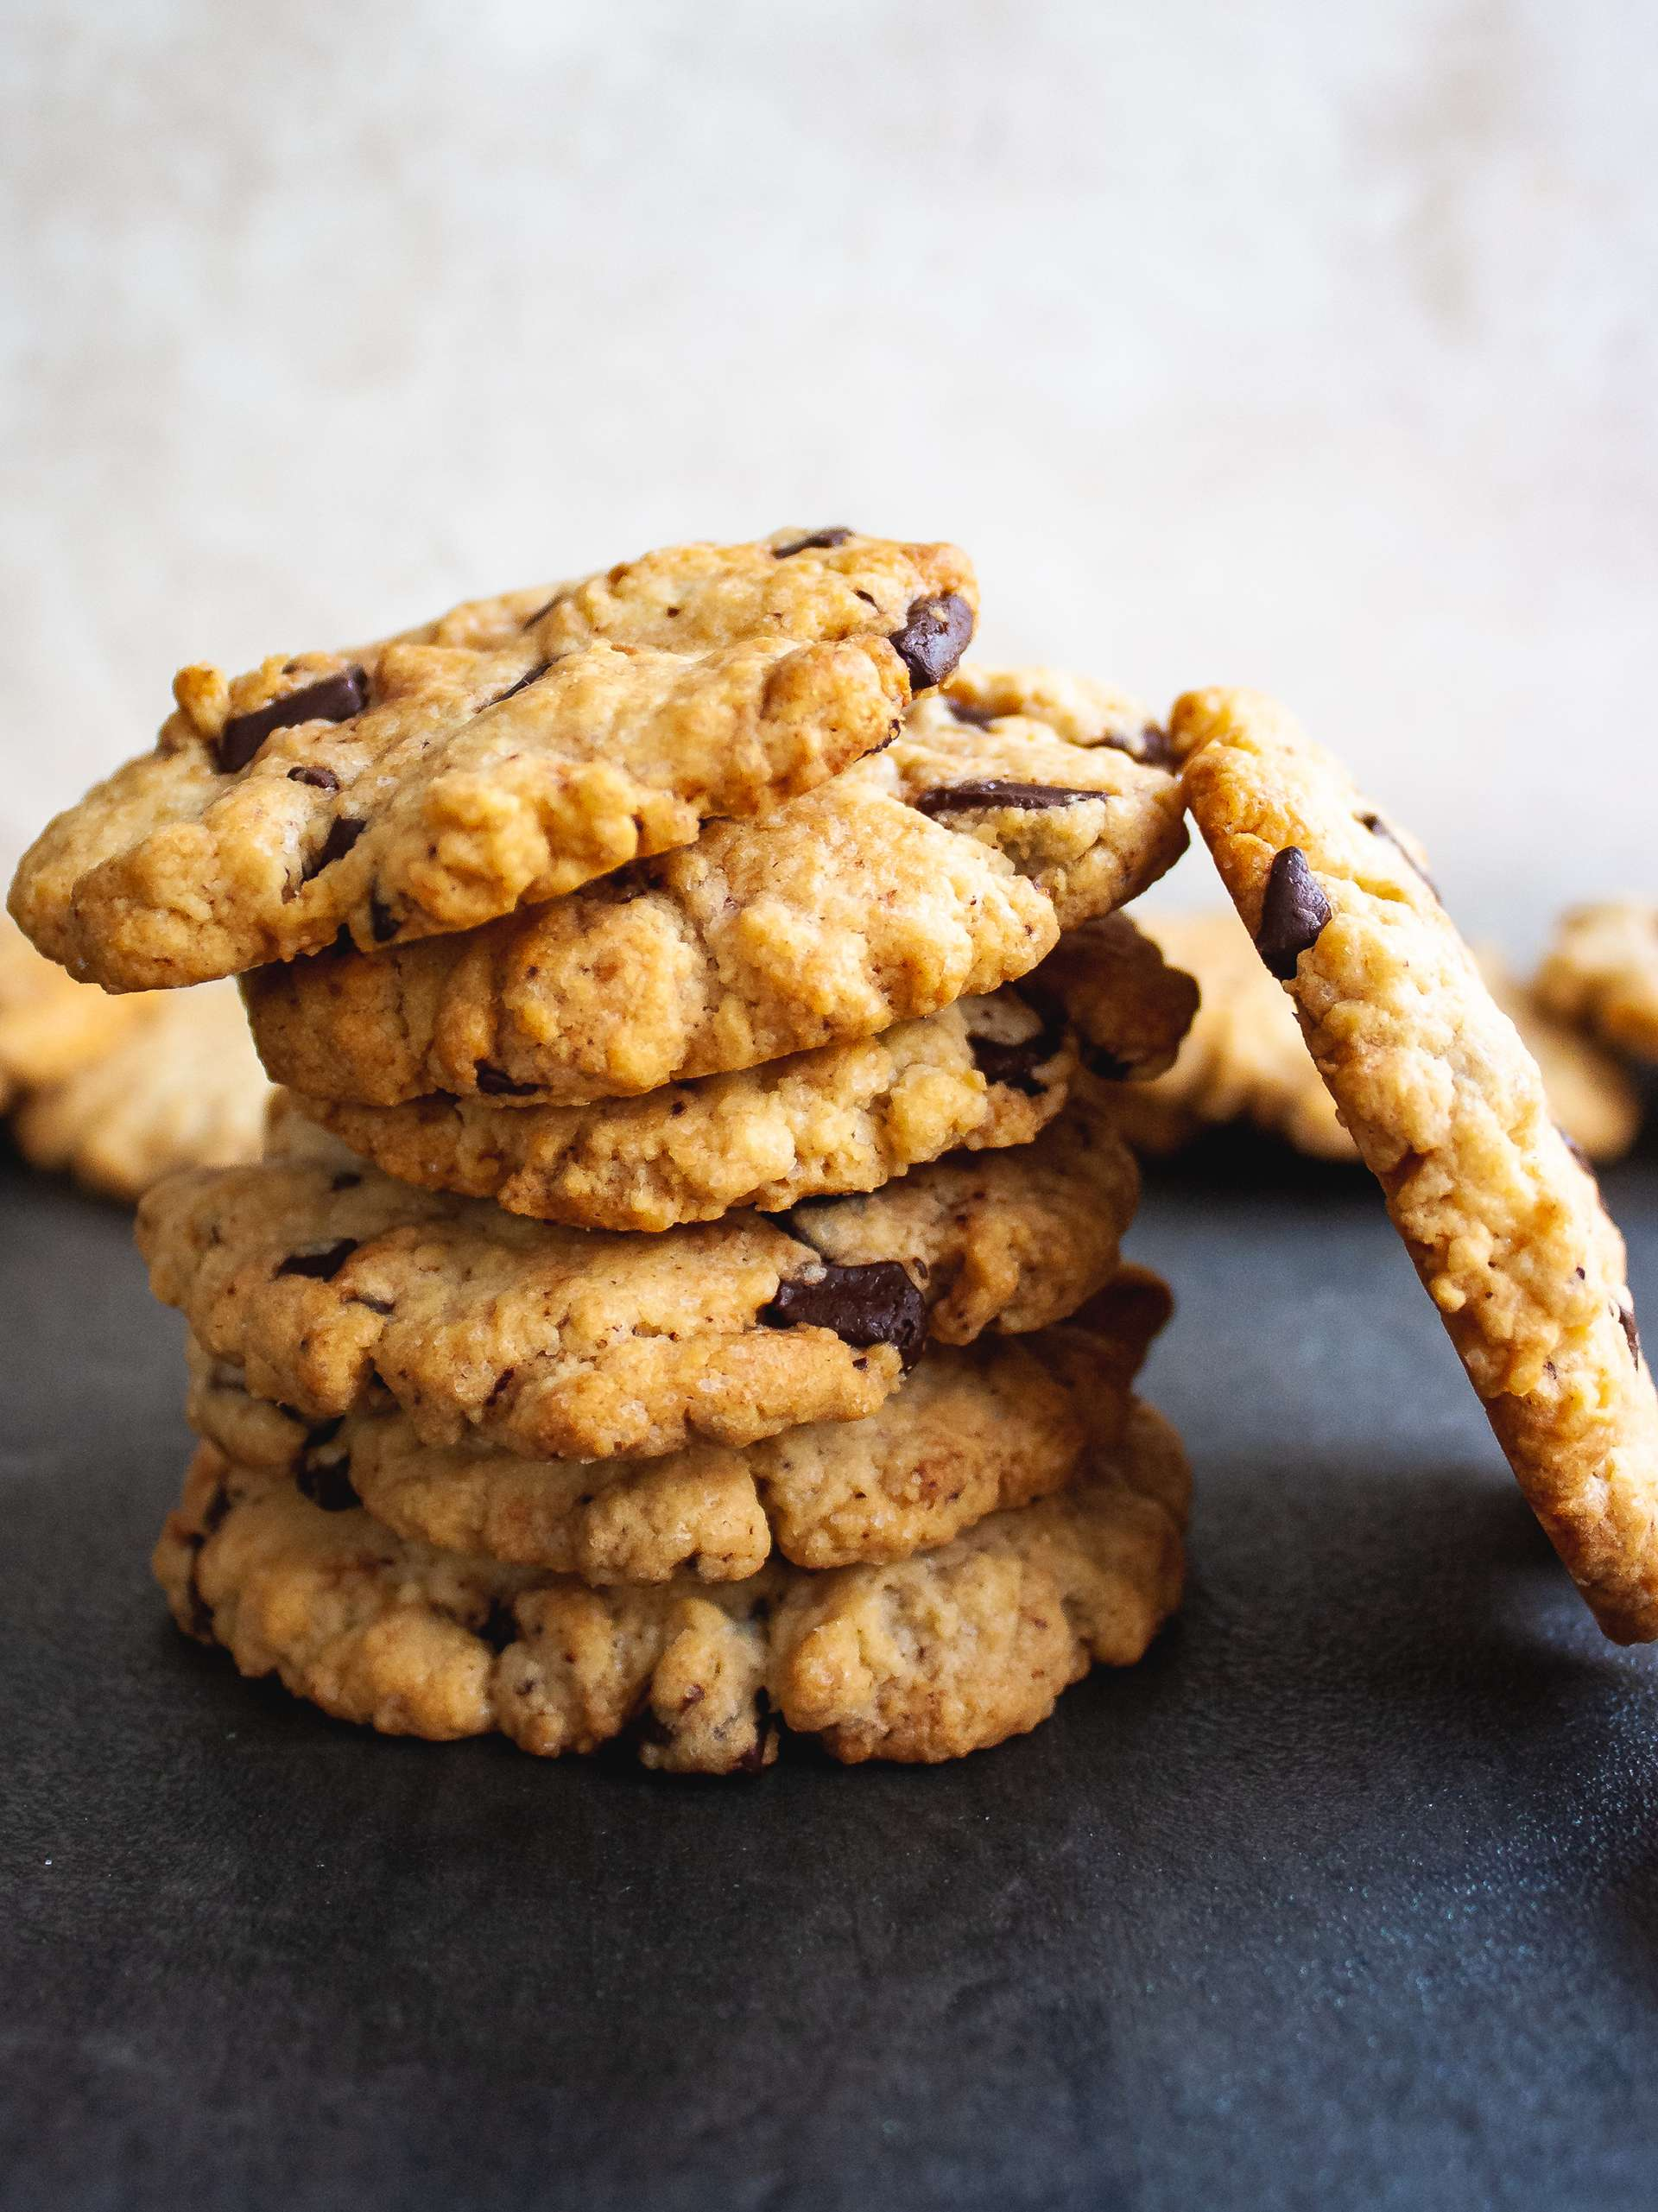 Gluten Free Oat Flour Chocolate Chip Cookies